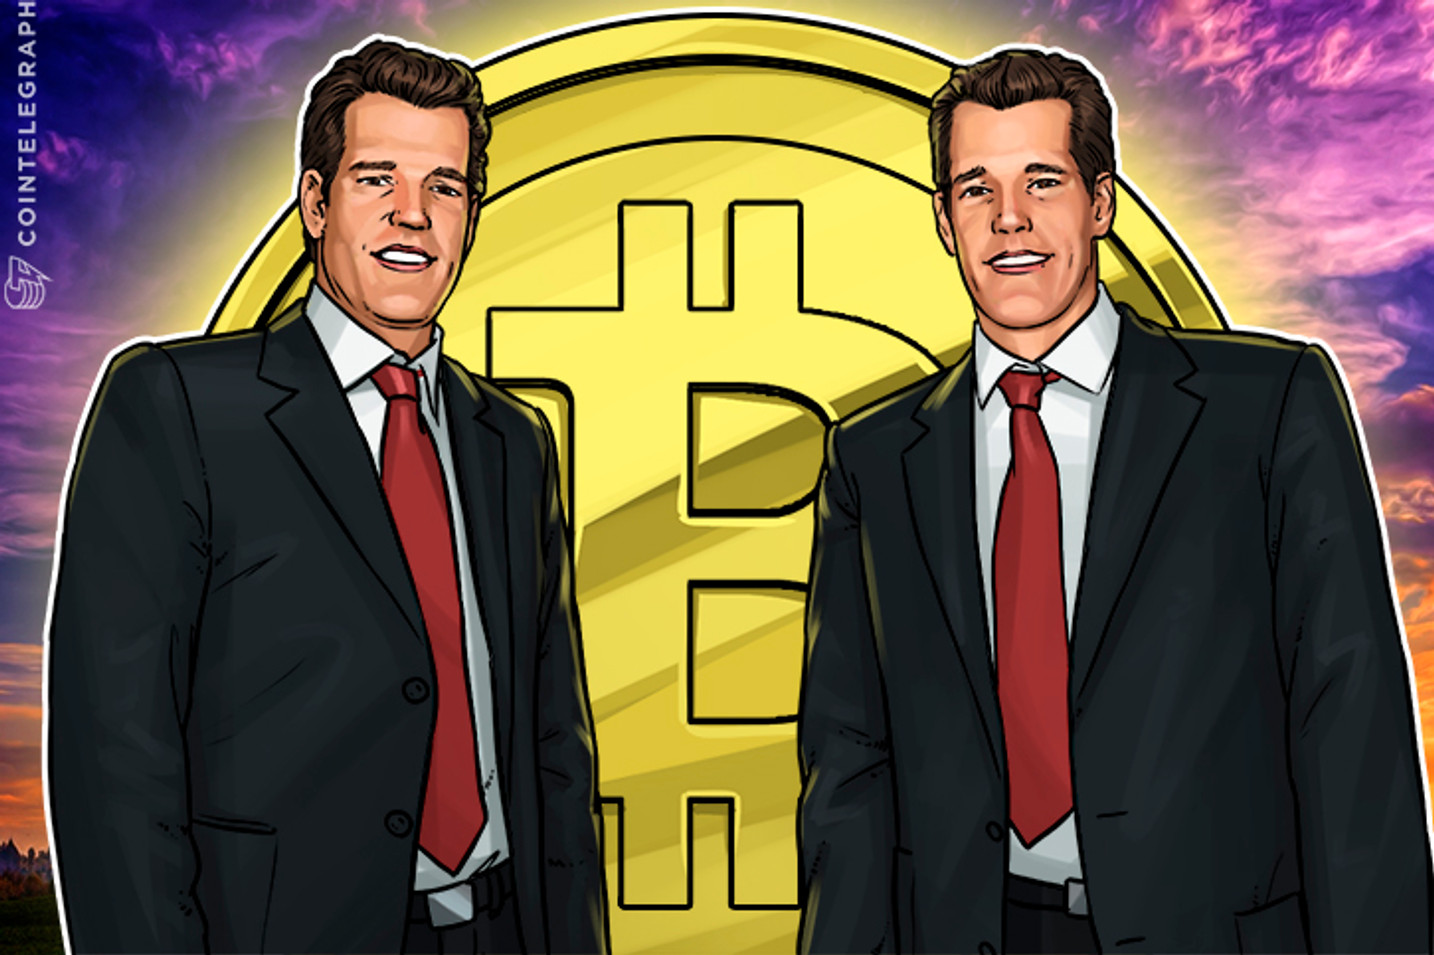 Winklevoss Twins' Bitcoin Investment Already Worth More Than $1 Billion